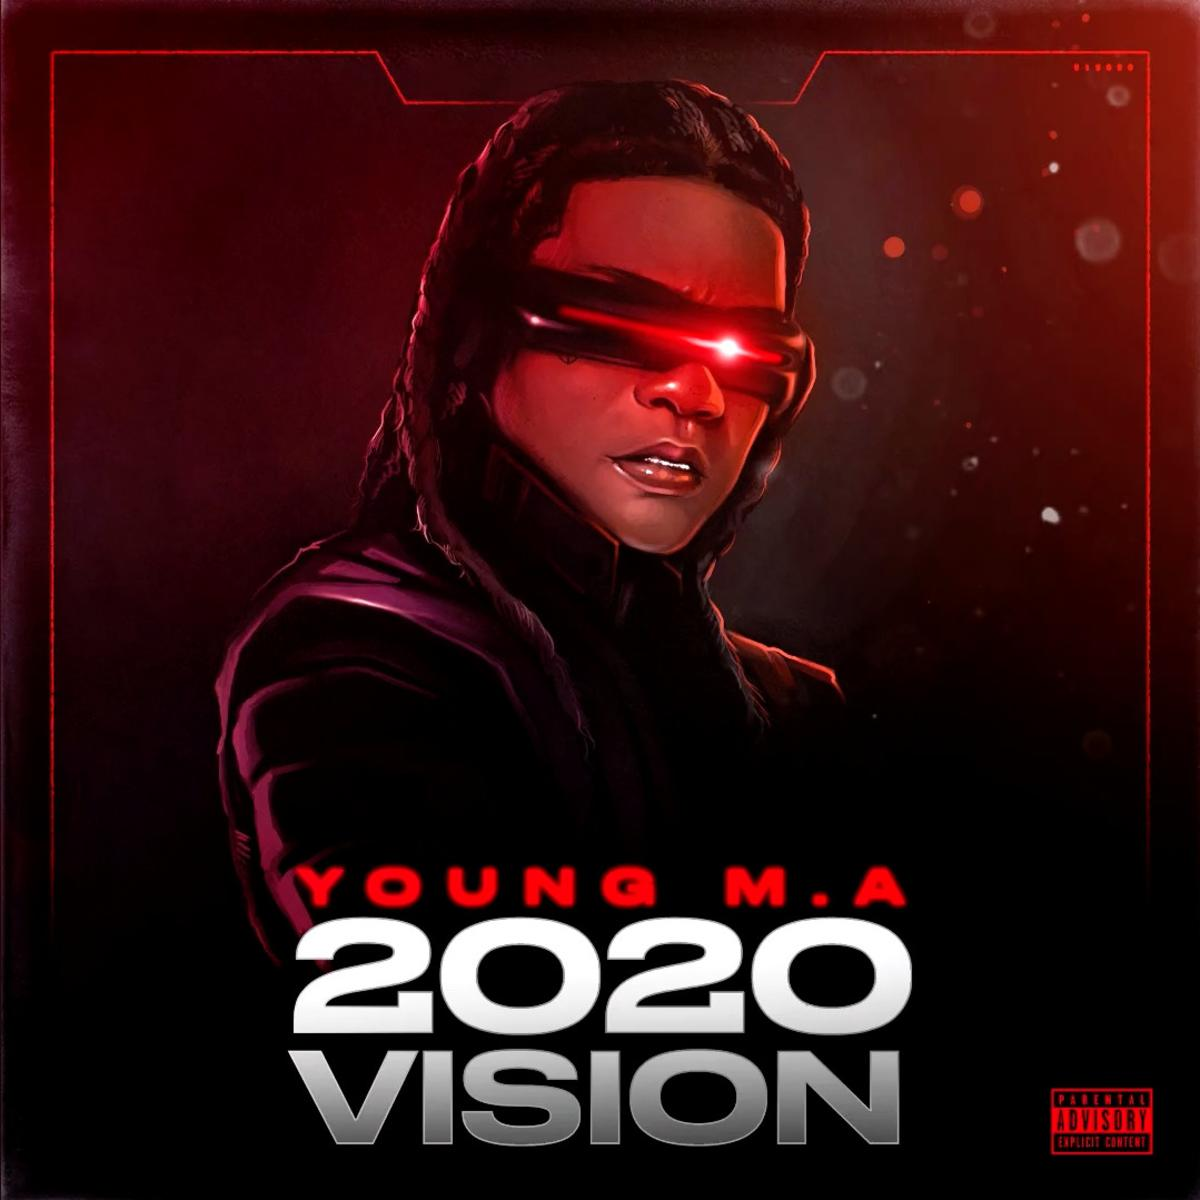 Young M.A - 2020 Vision